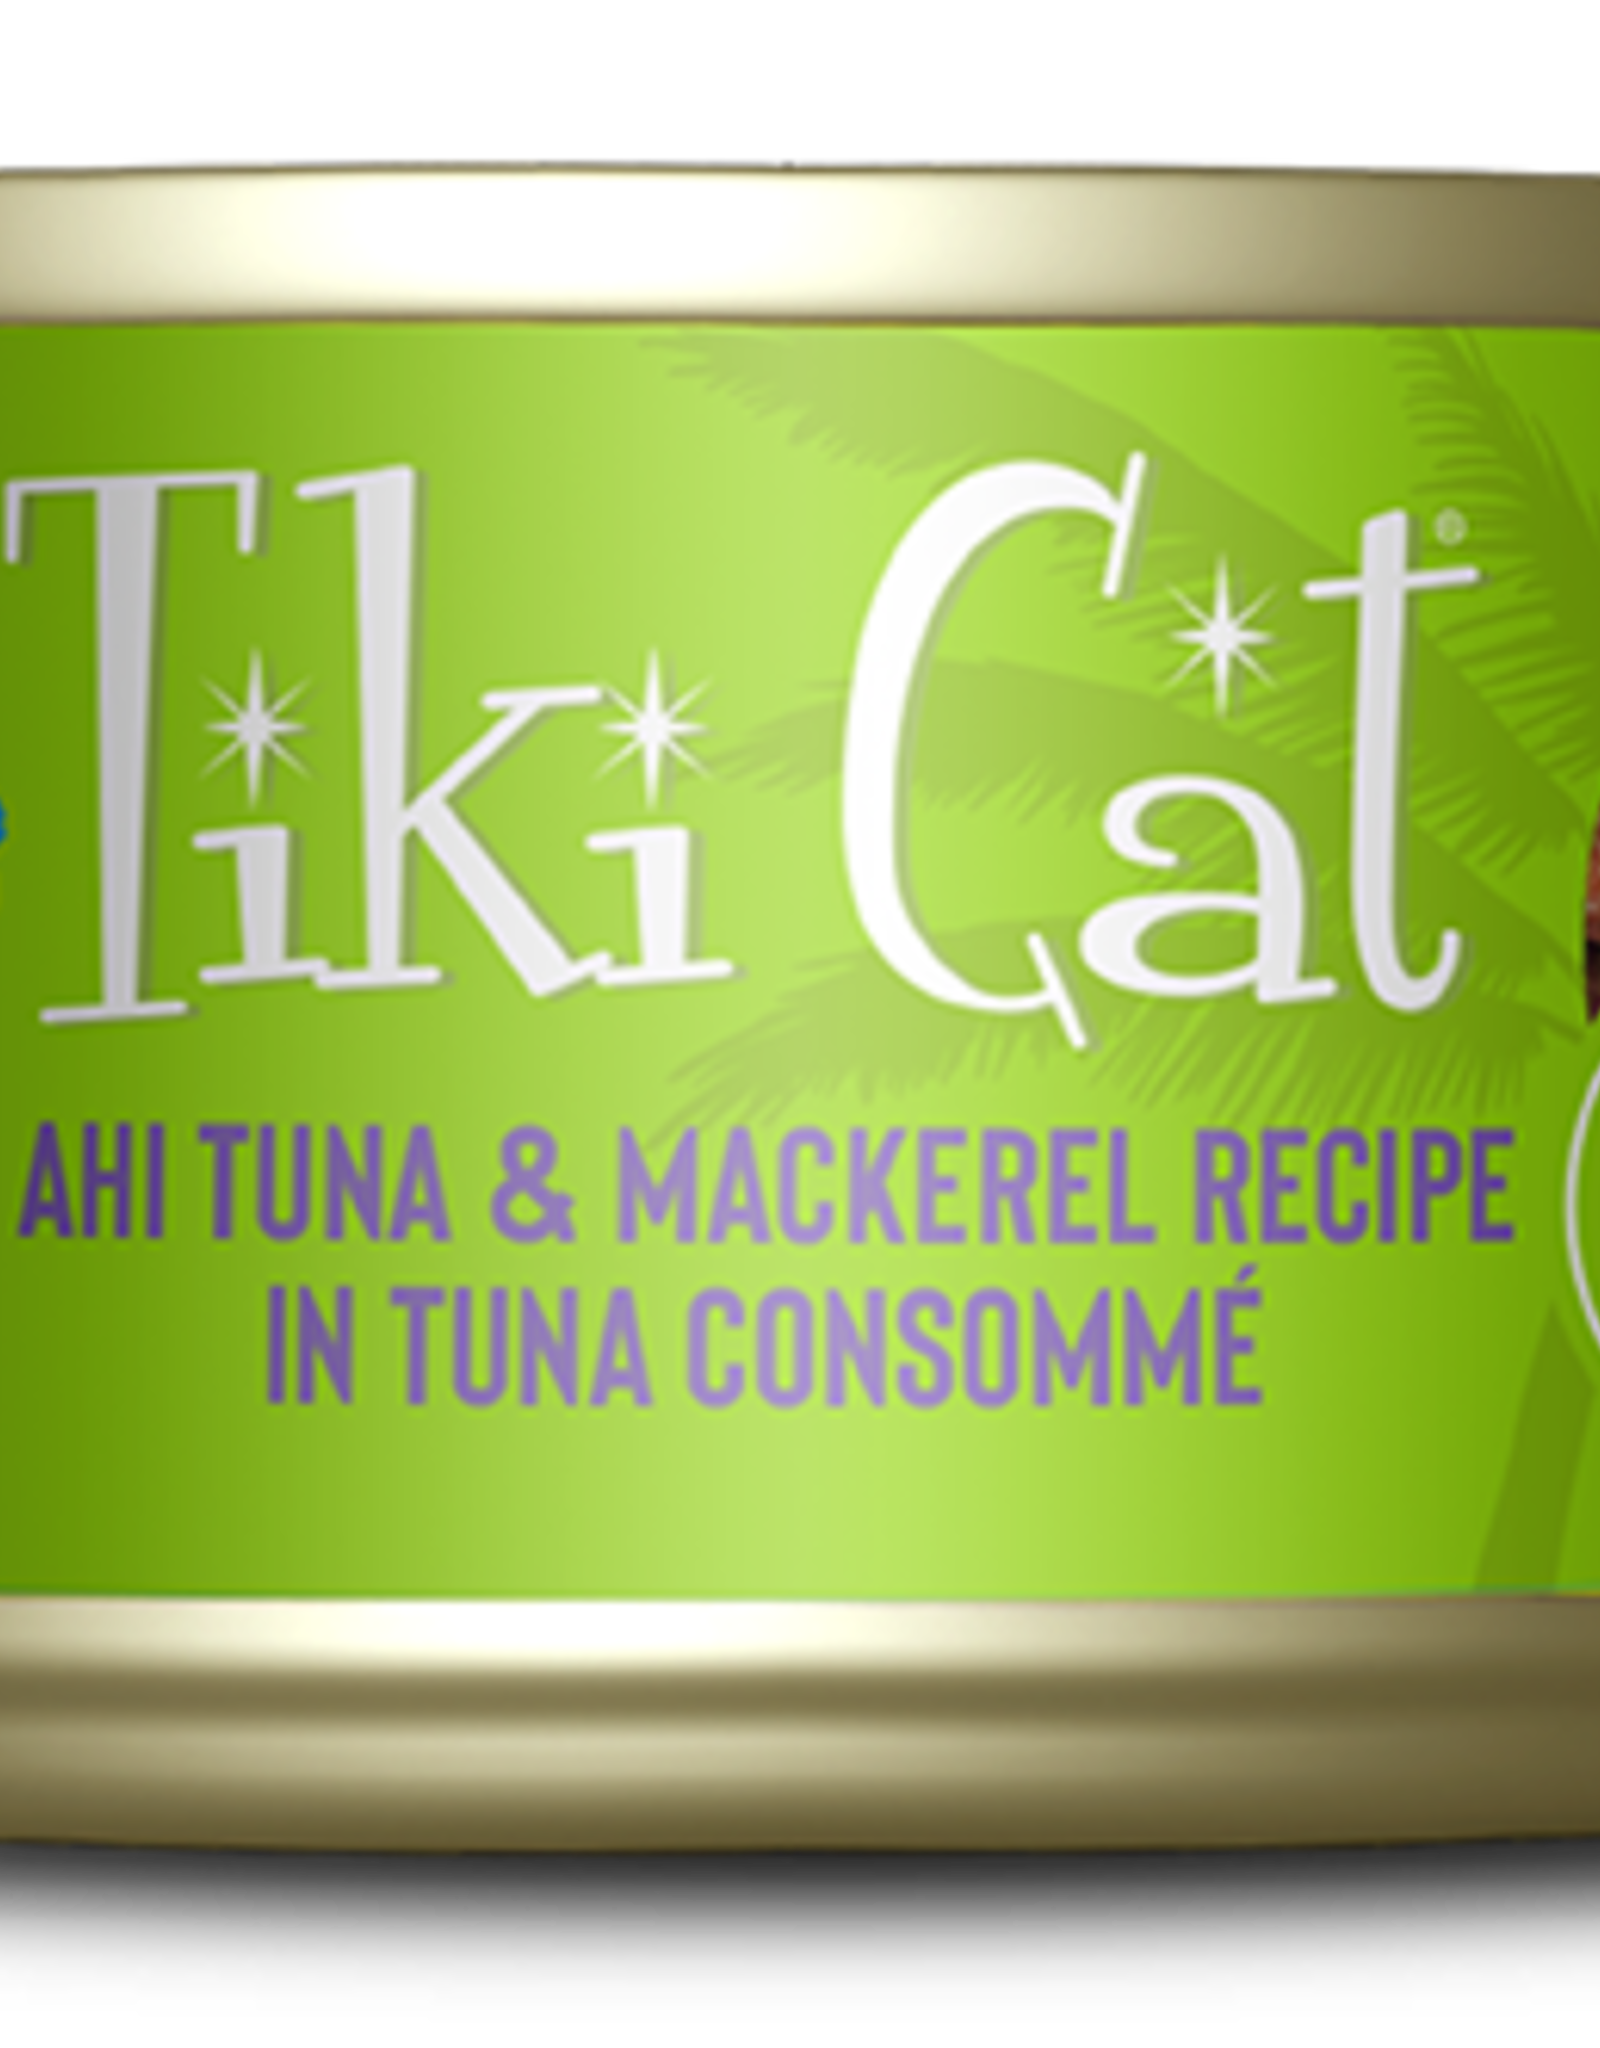 Tiki Pets Cat Tuna & Mackerel Shredded - Grain-Free 6oz